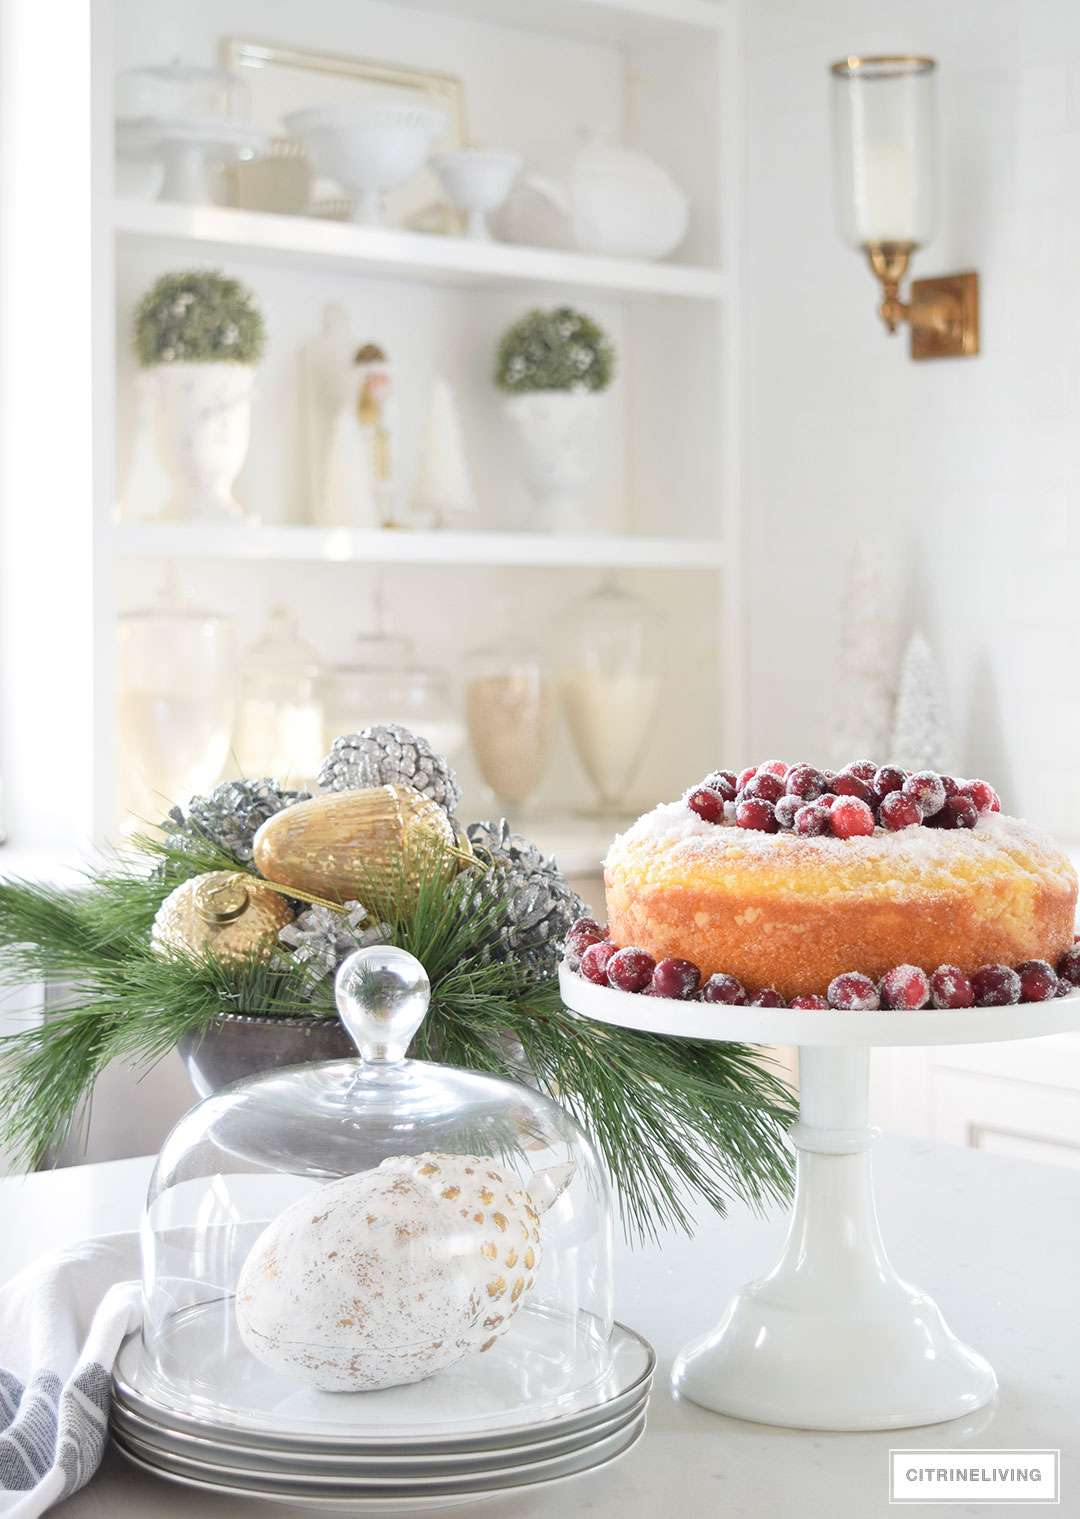 Christmas Home Tour - mixed metallics and holiday greenery create a chic Holiday theme